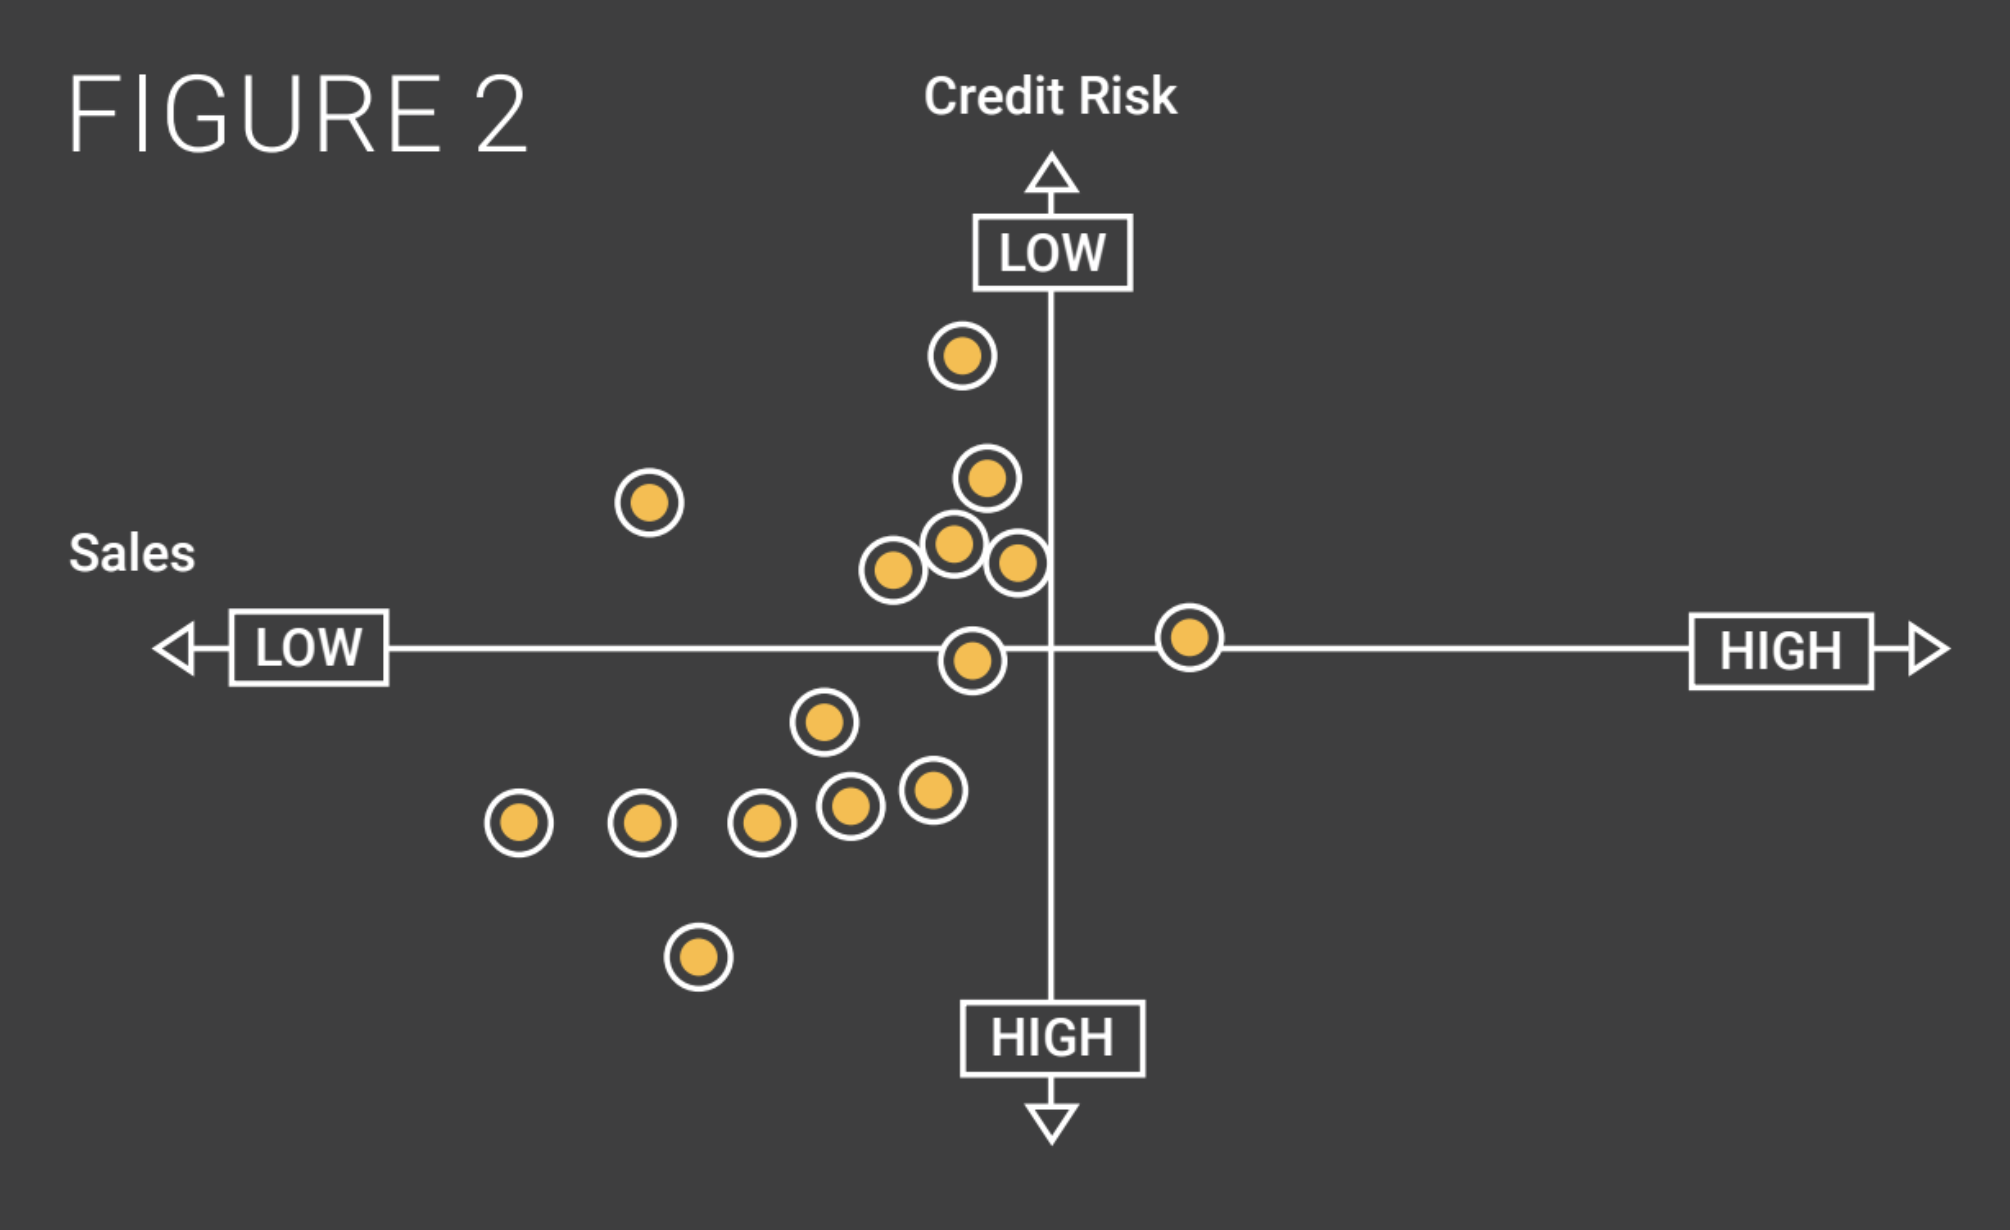 Figure 2 scatterplot where sales is X and Credit Risk is Y